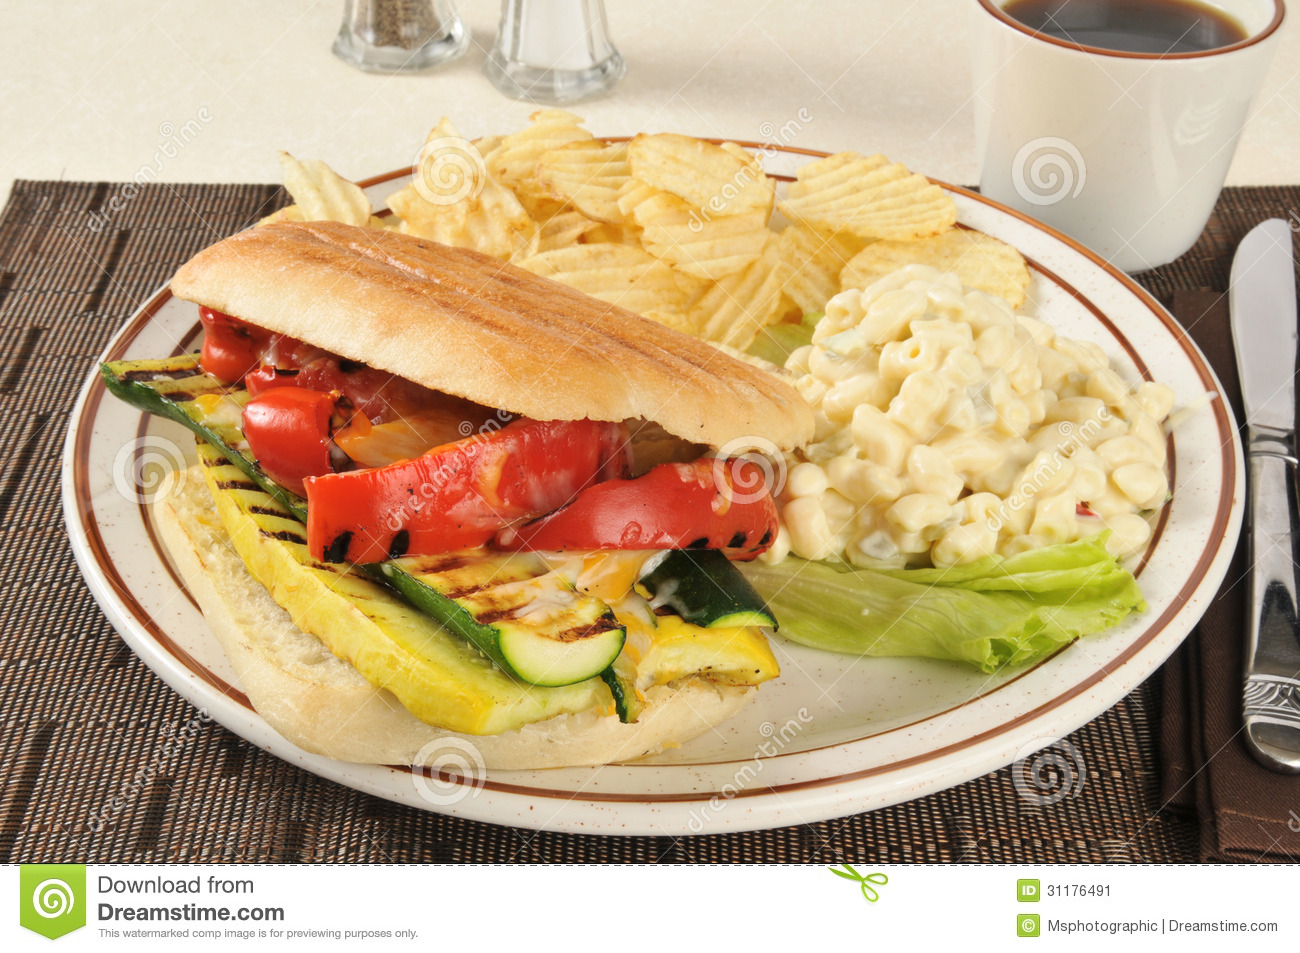 Grilled Vegetable Panini Stock Image - Image: 31176491